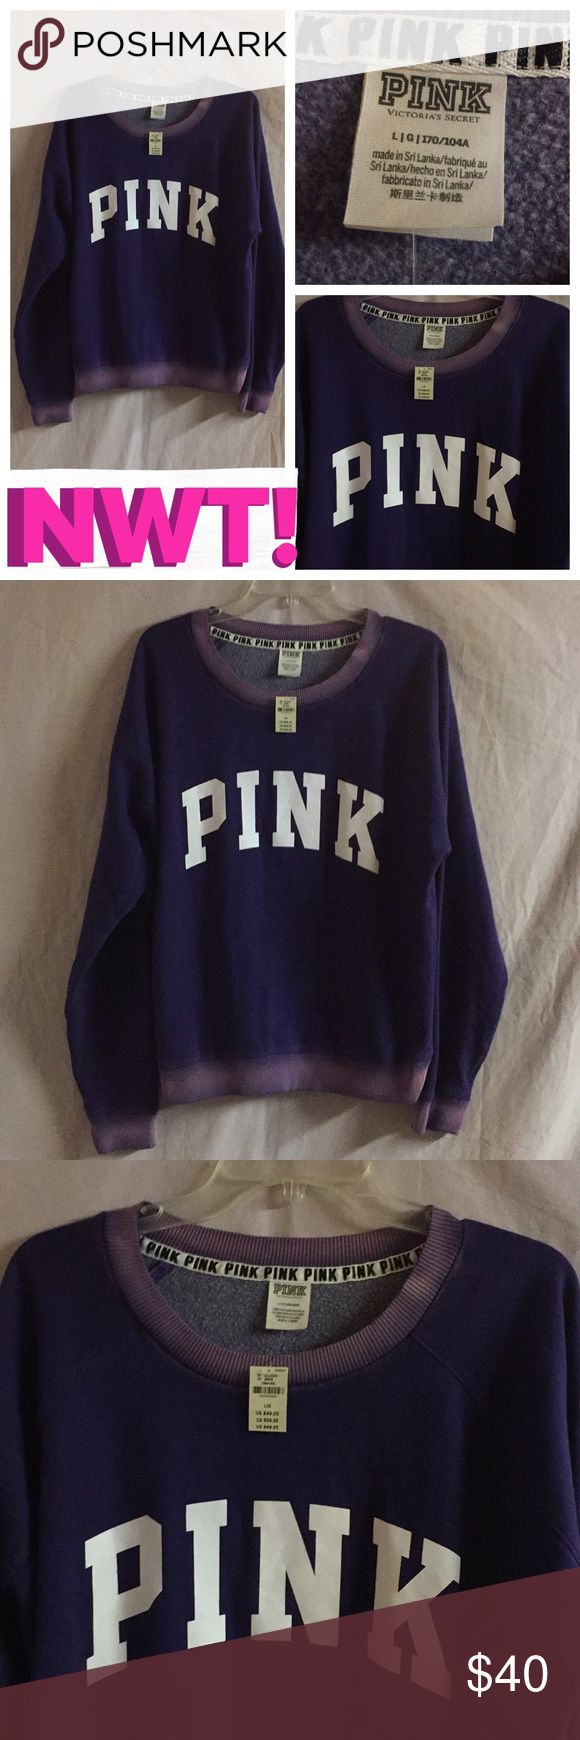 "NWT! PINK DISTRESSED CAMPUS CREW NWT PINK DISTRESSED PURPLE & WHITE OVERSIZED CAMPUS CREW PULLOVER. FEATURES: 📌SUPER SOFT FLEECE-78% COTTON & 22% POLY 📌LONGER TUNIC LENGTH-26"", PERFECT TO WEAR WITH LEGGINGS! 📌RELAXED, OVERSIZED FIT 📌HAS AN ALMOST TYE DIE LOOKING AREA AROUND THE NECKLINE, CUFFED WRISTS, & BOTTOM HEM-SEE PICS #3-#5. PINK Victoria's Secret Tops Sweatshirts & Hoodies"